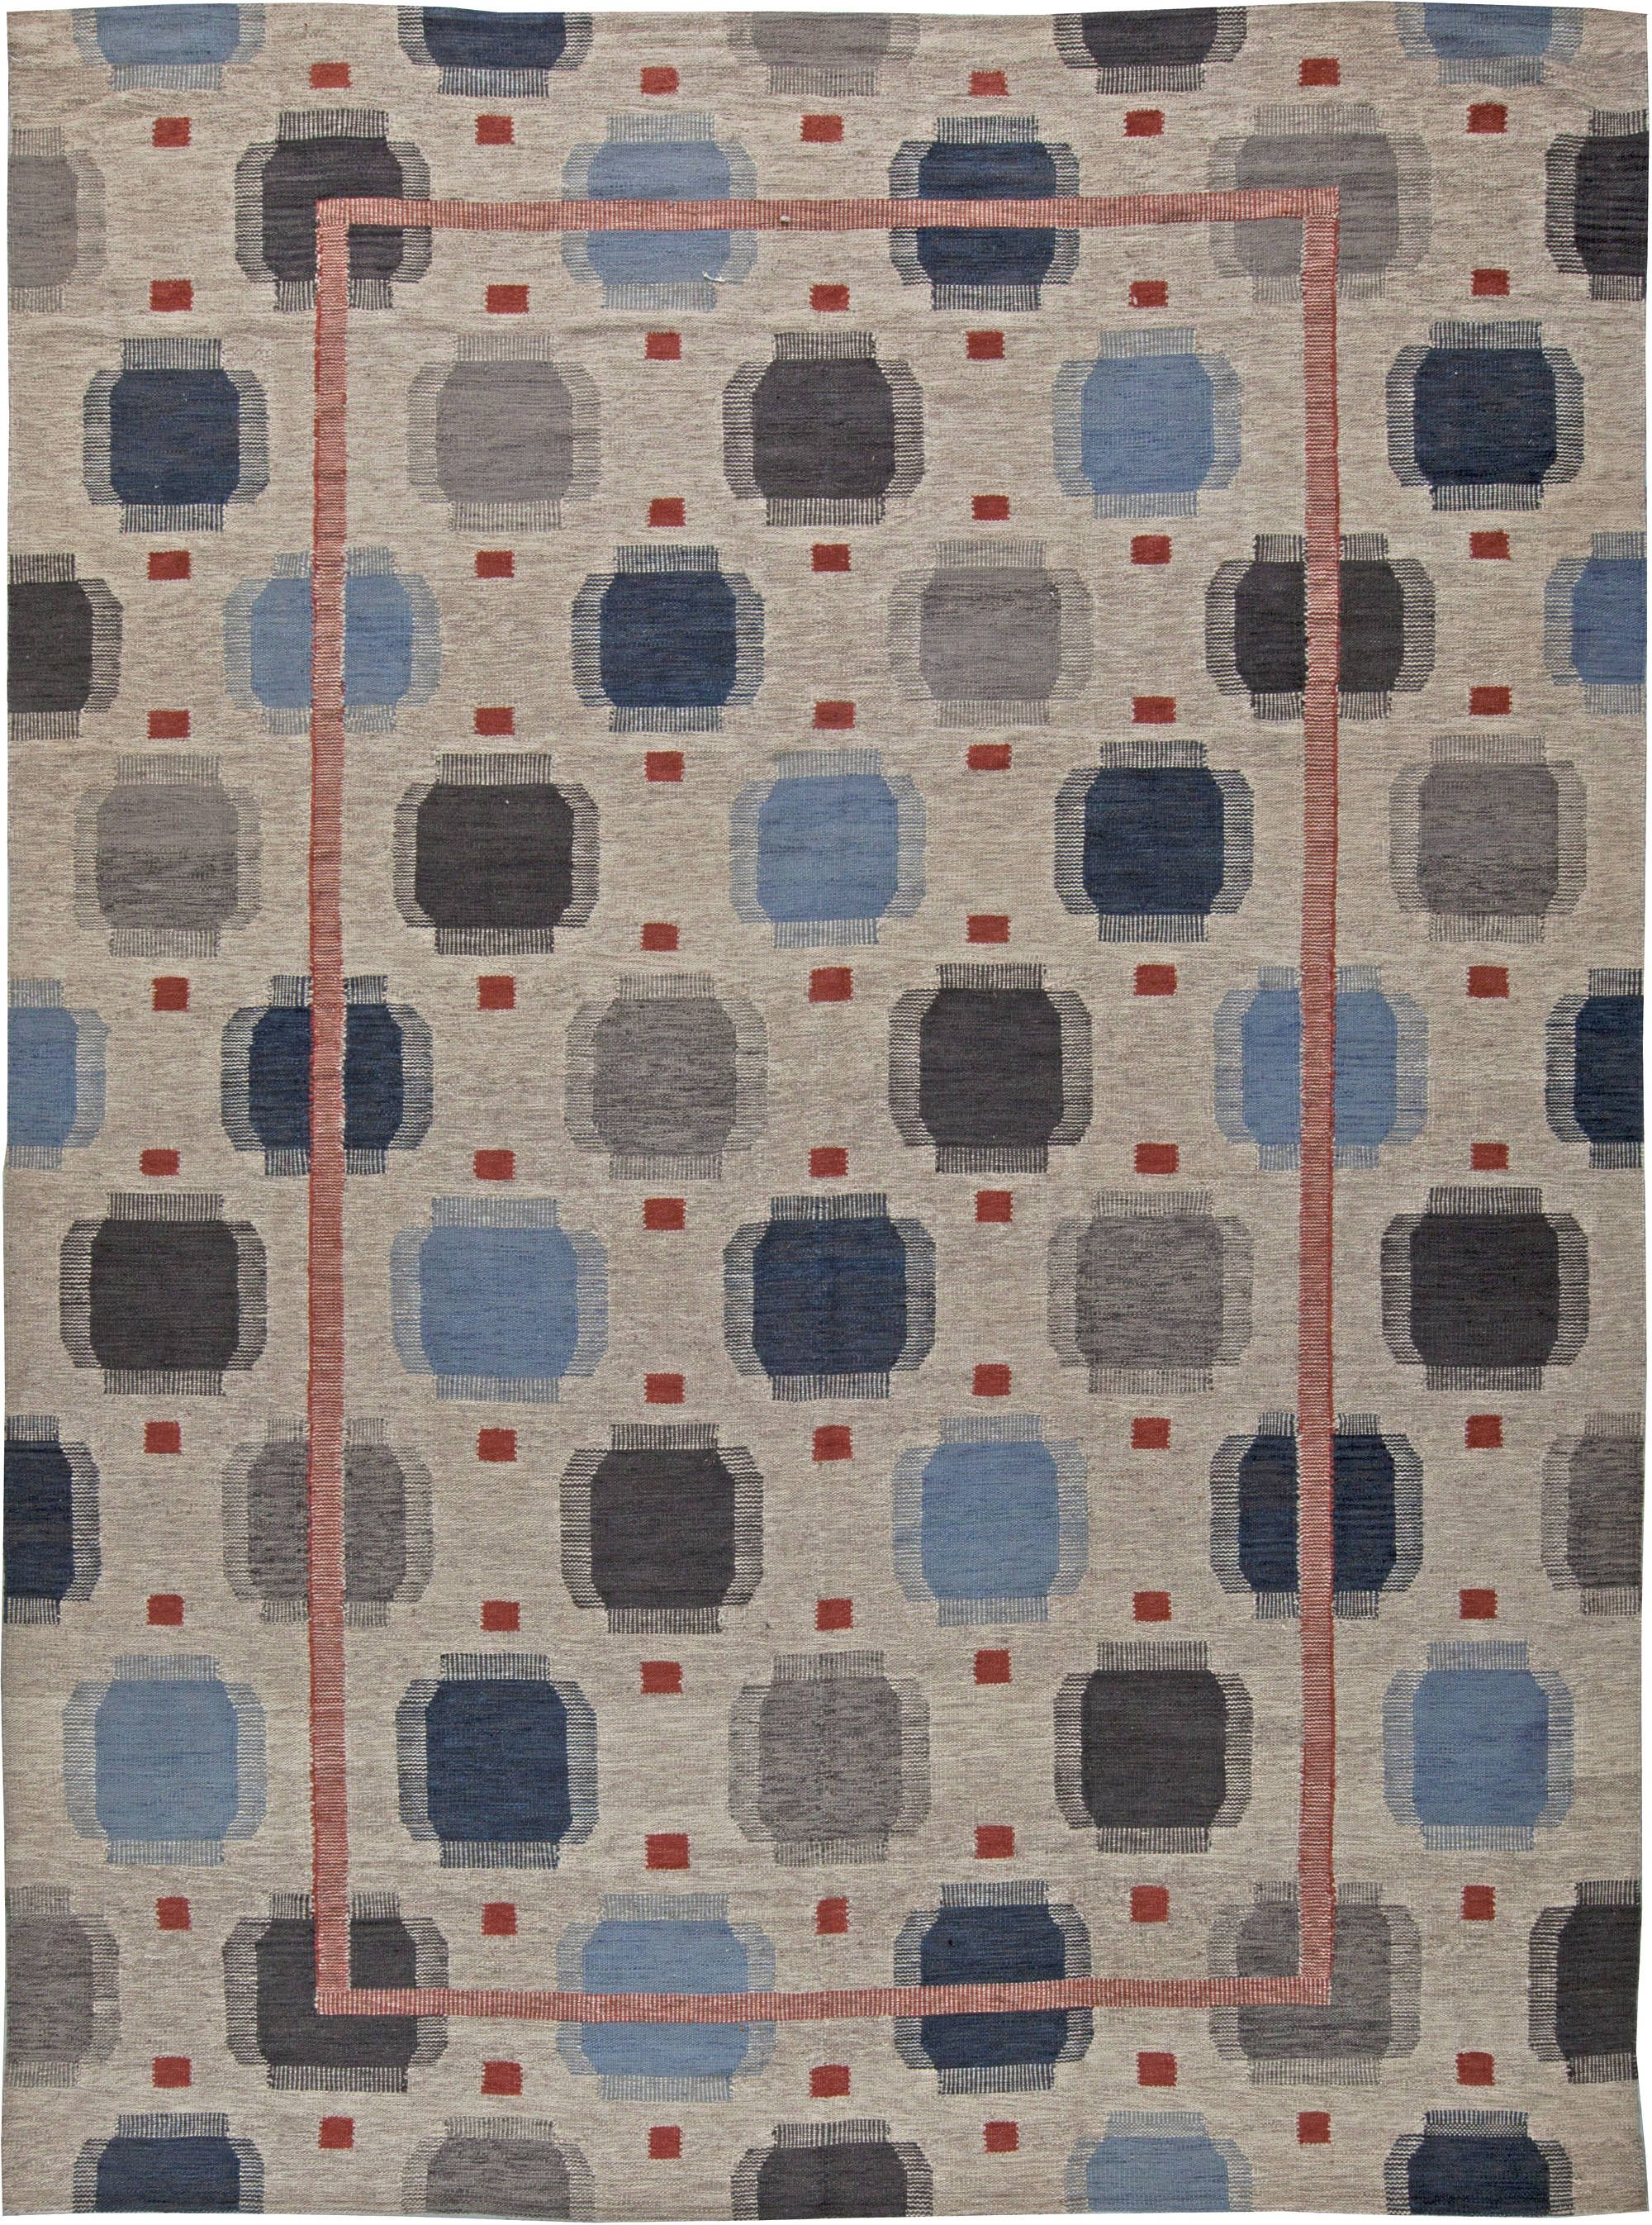 Swedish Rugs Scandinavian Geometric Blue Rug From Doris Leslie Blau Features Hand Knotted Wool Pattern Swedishrug